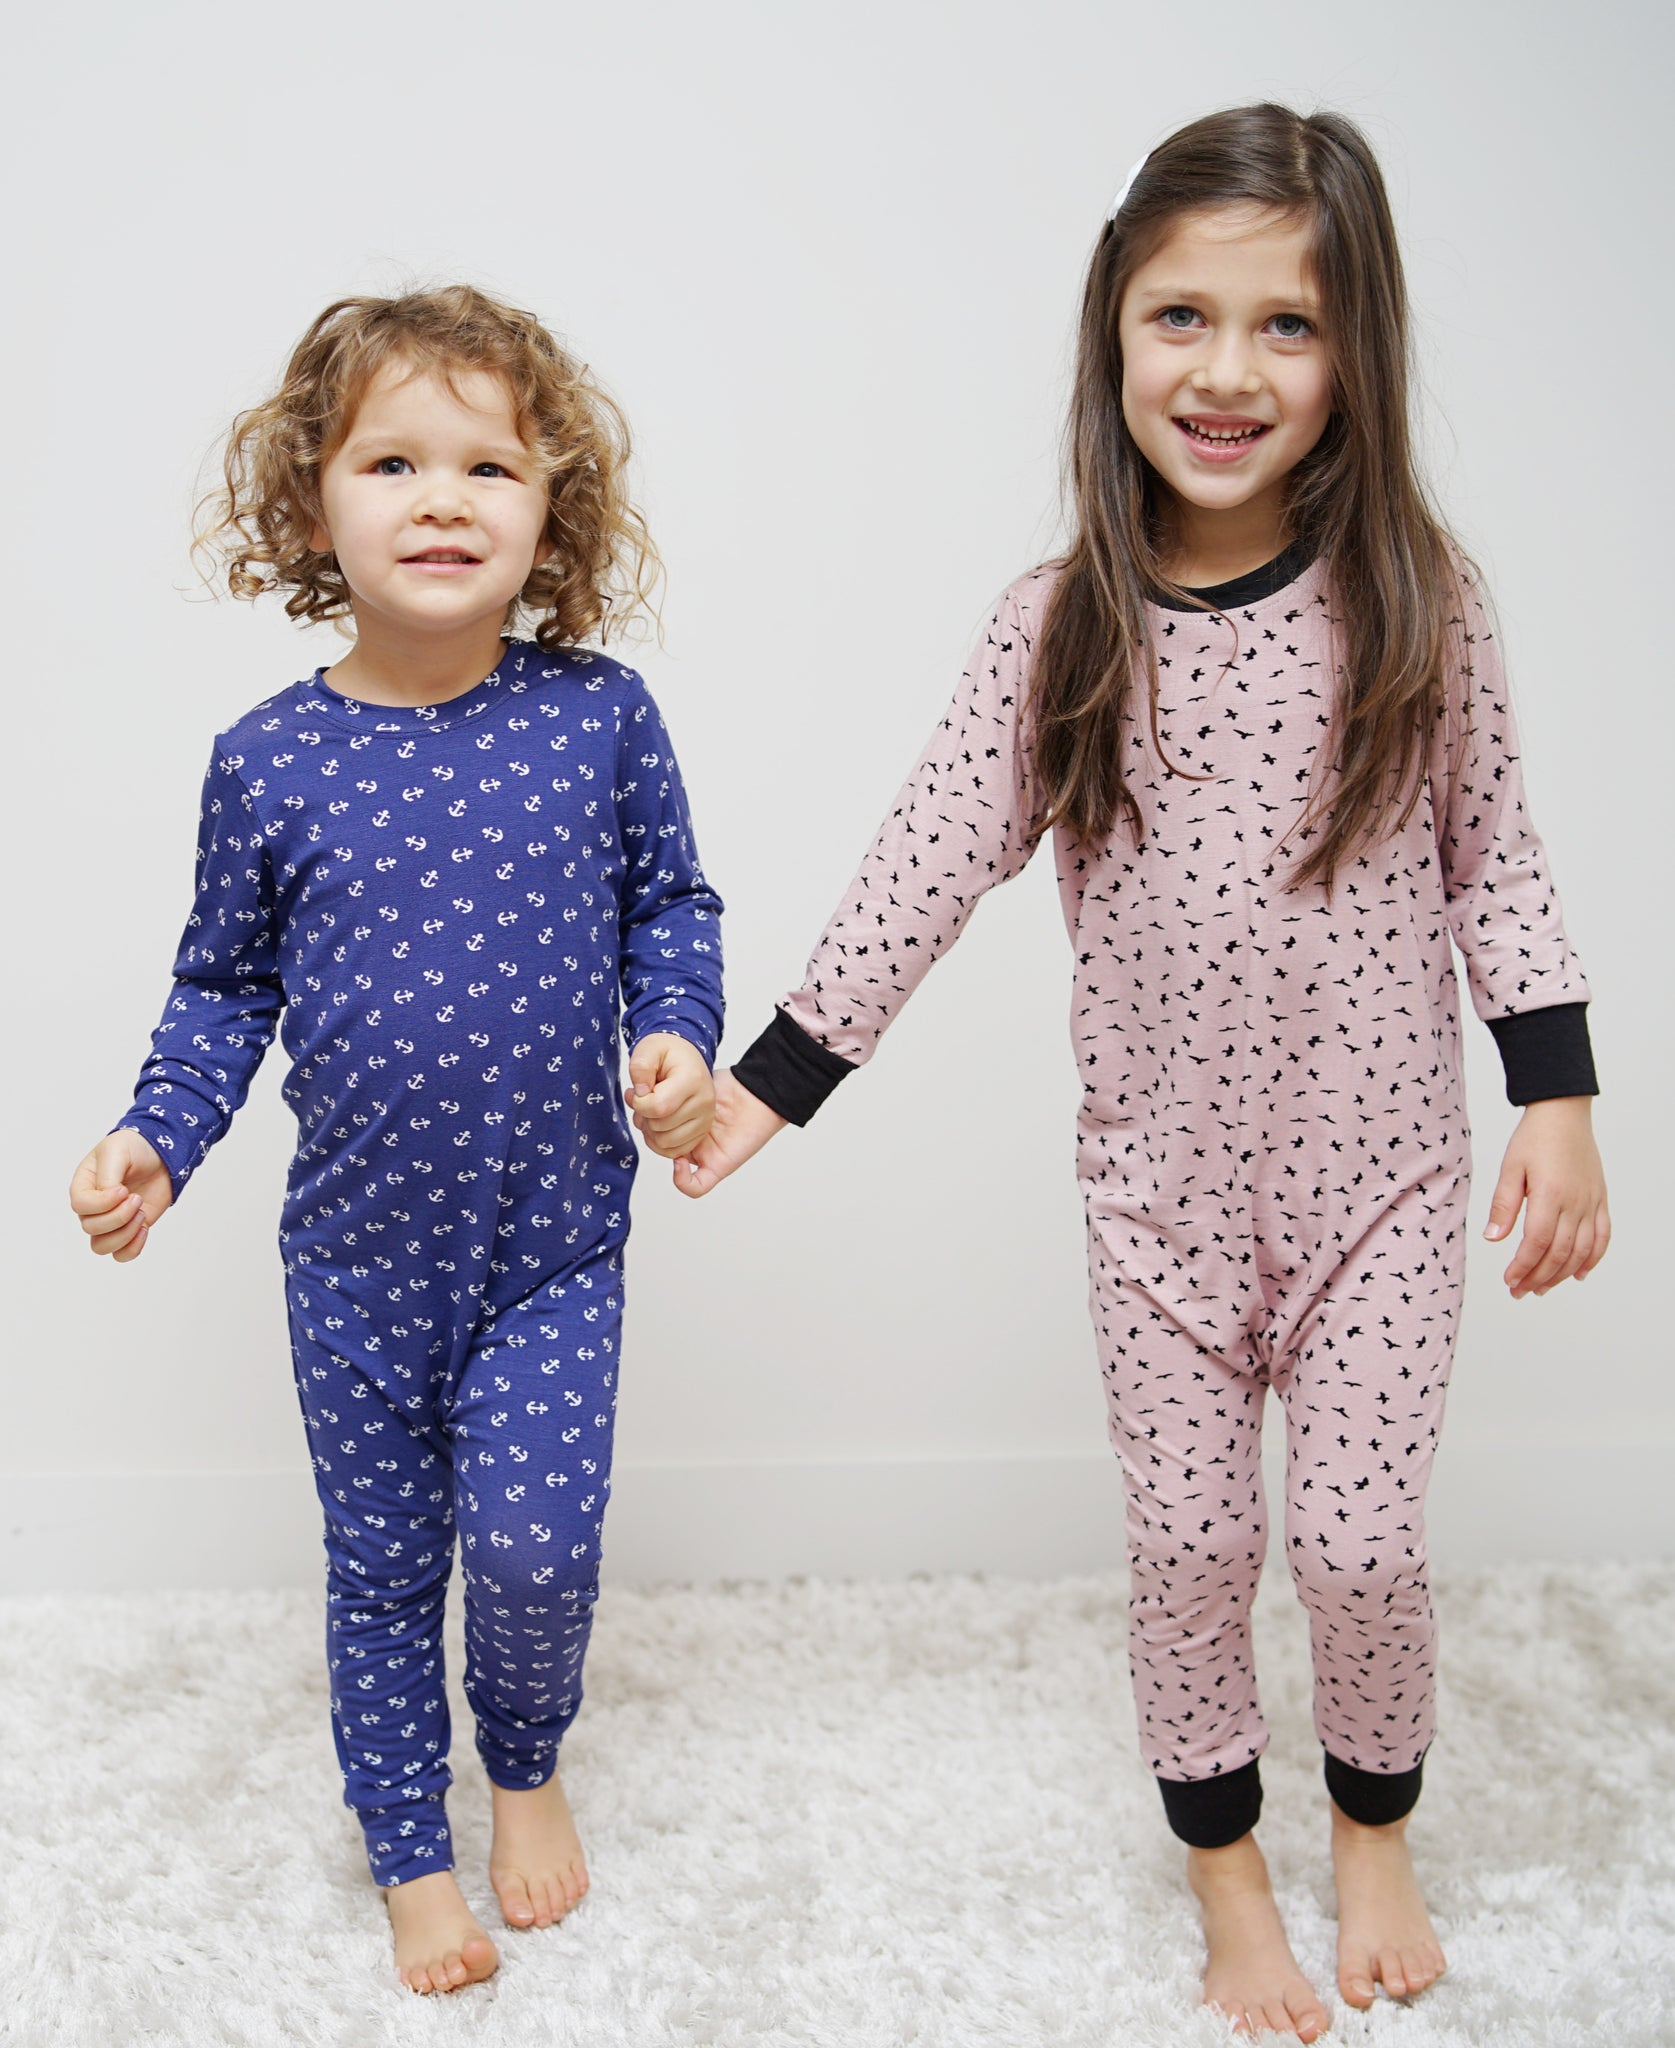 Kids Unisex Printed Bamboo Rompers - New for Holiday! – Lav and Kush 8ce50e937